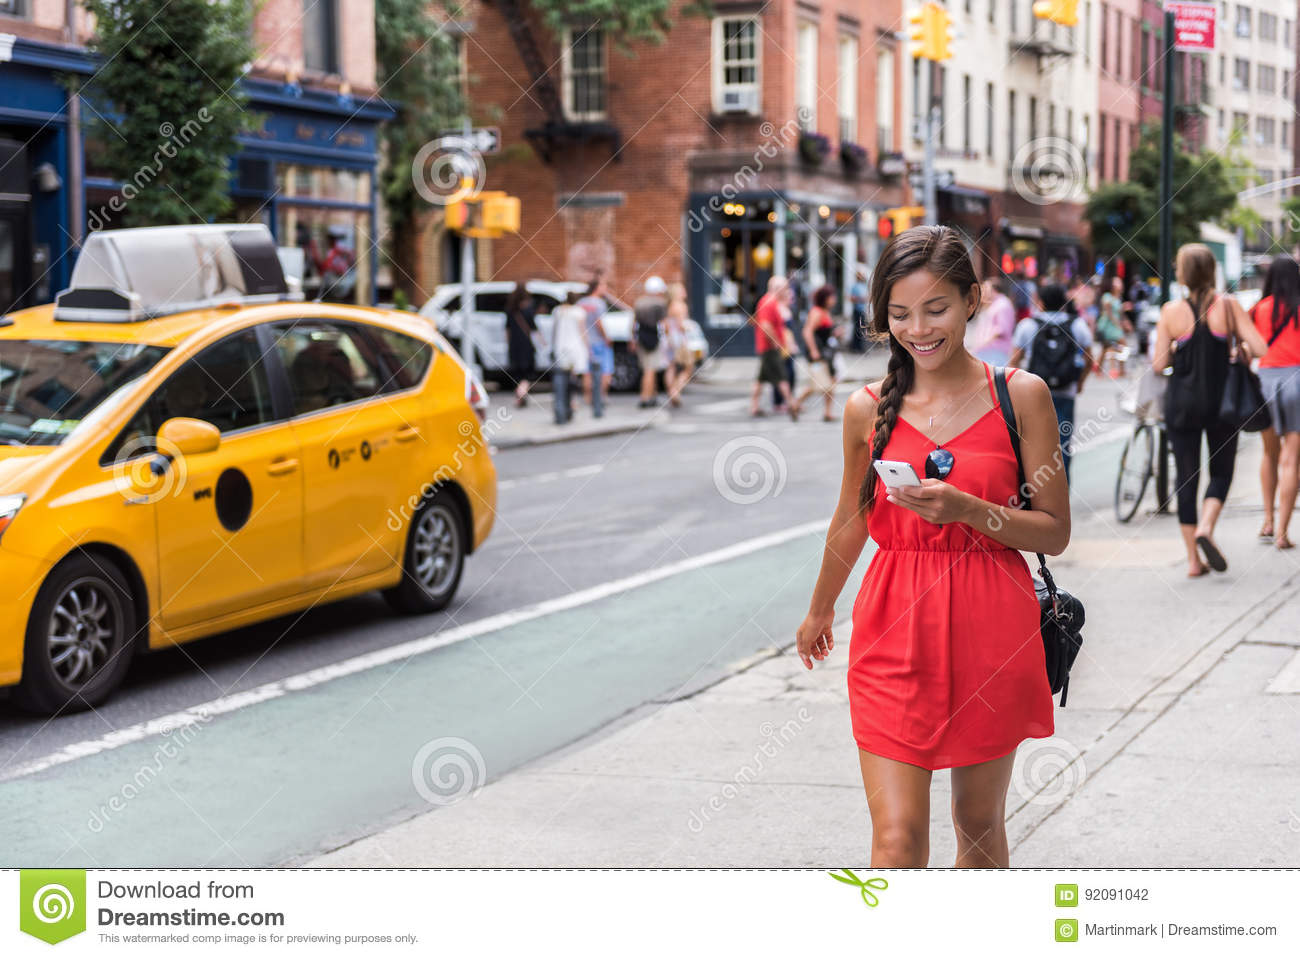 New york city dating apps